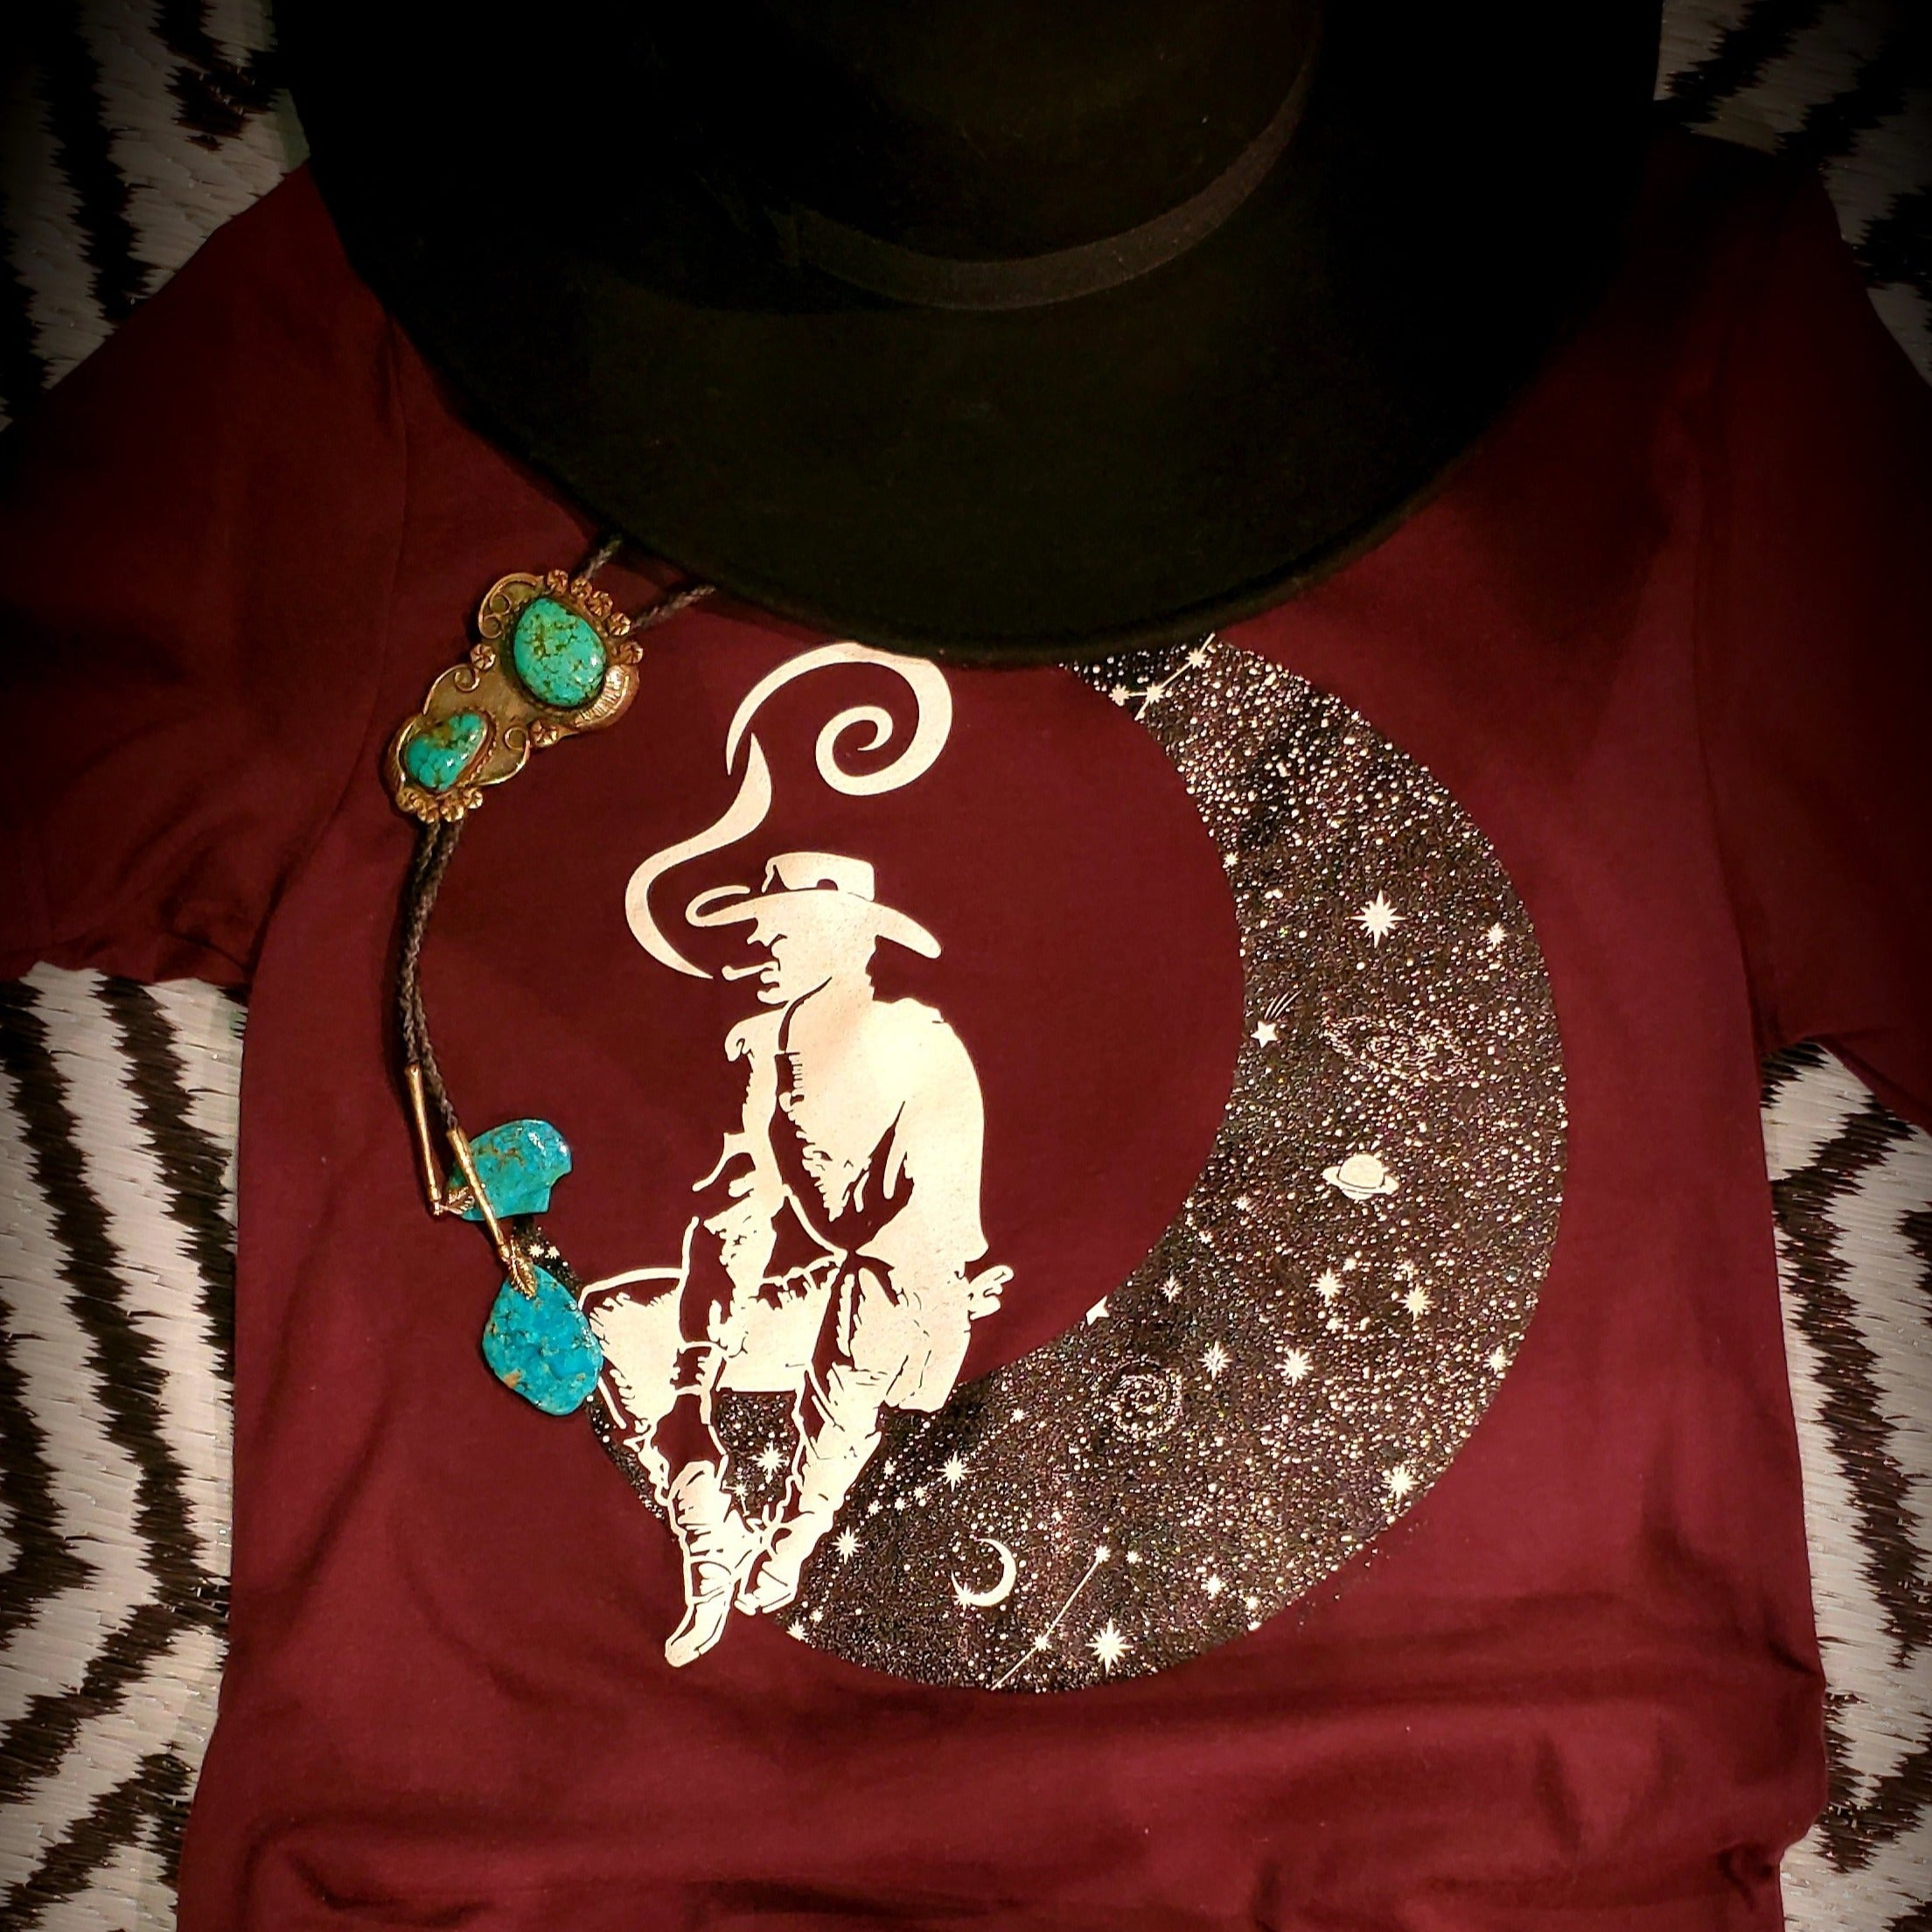 The Space Cowboy Tee